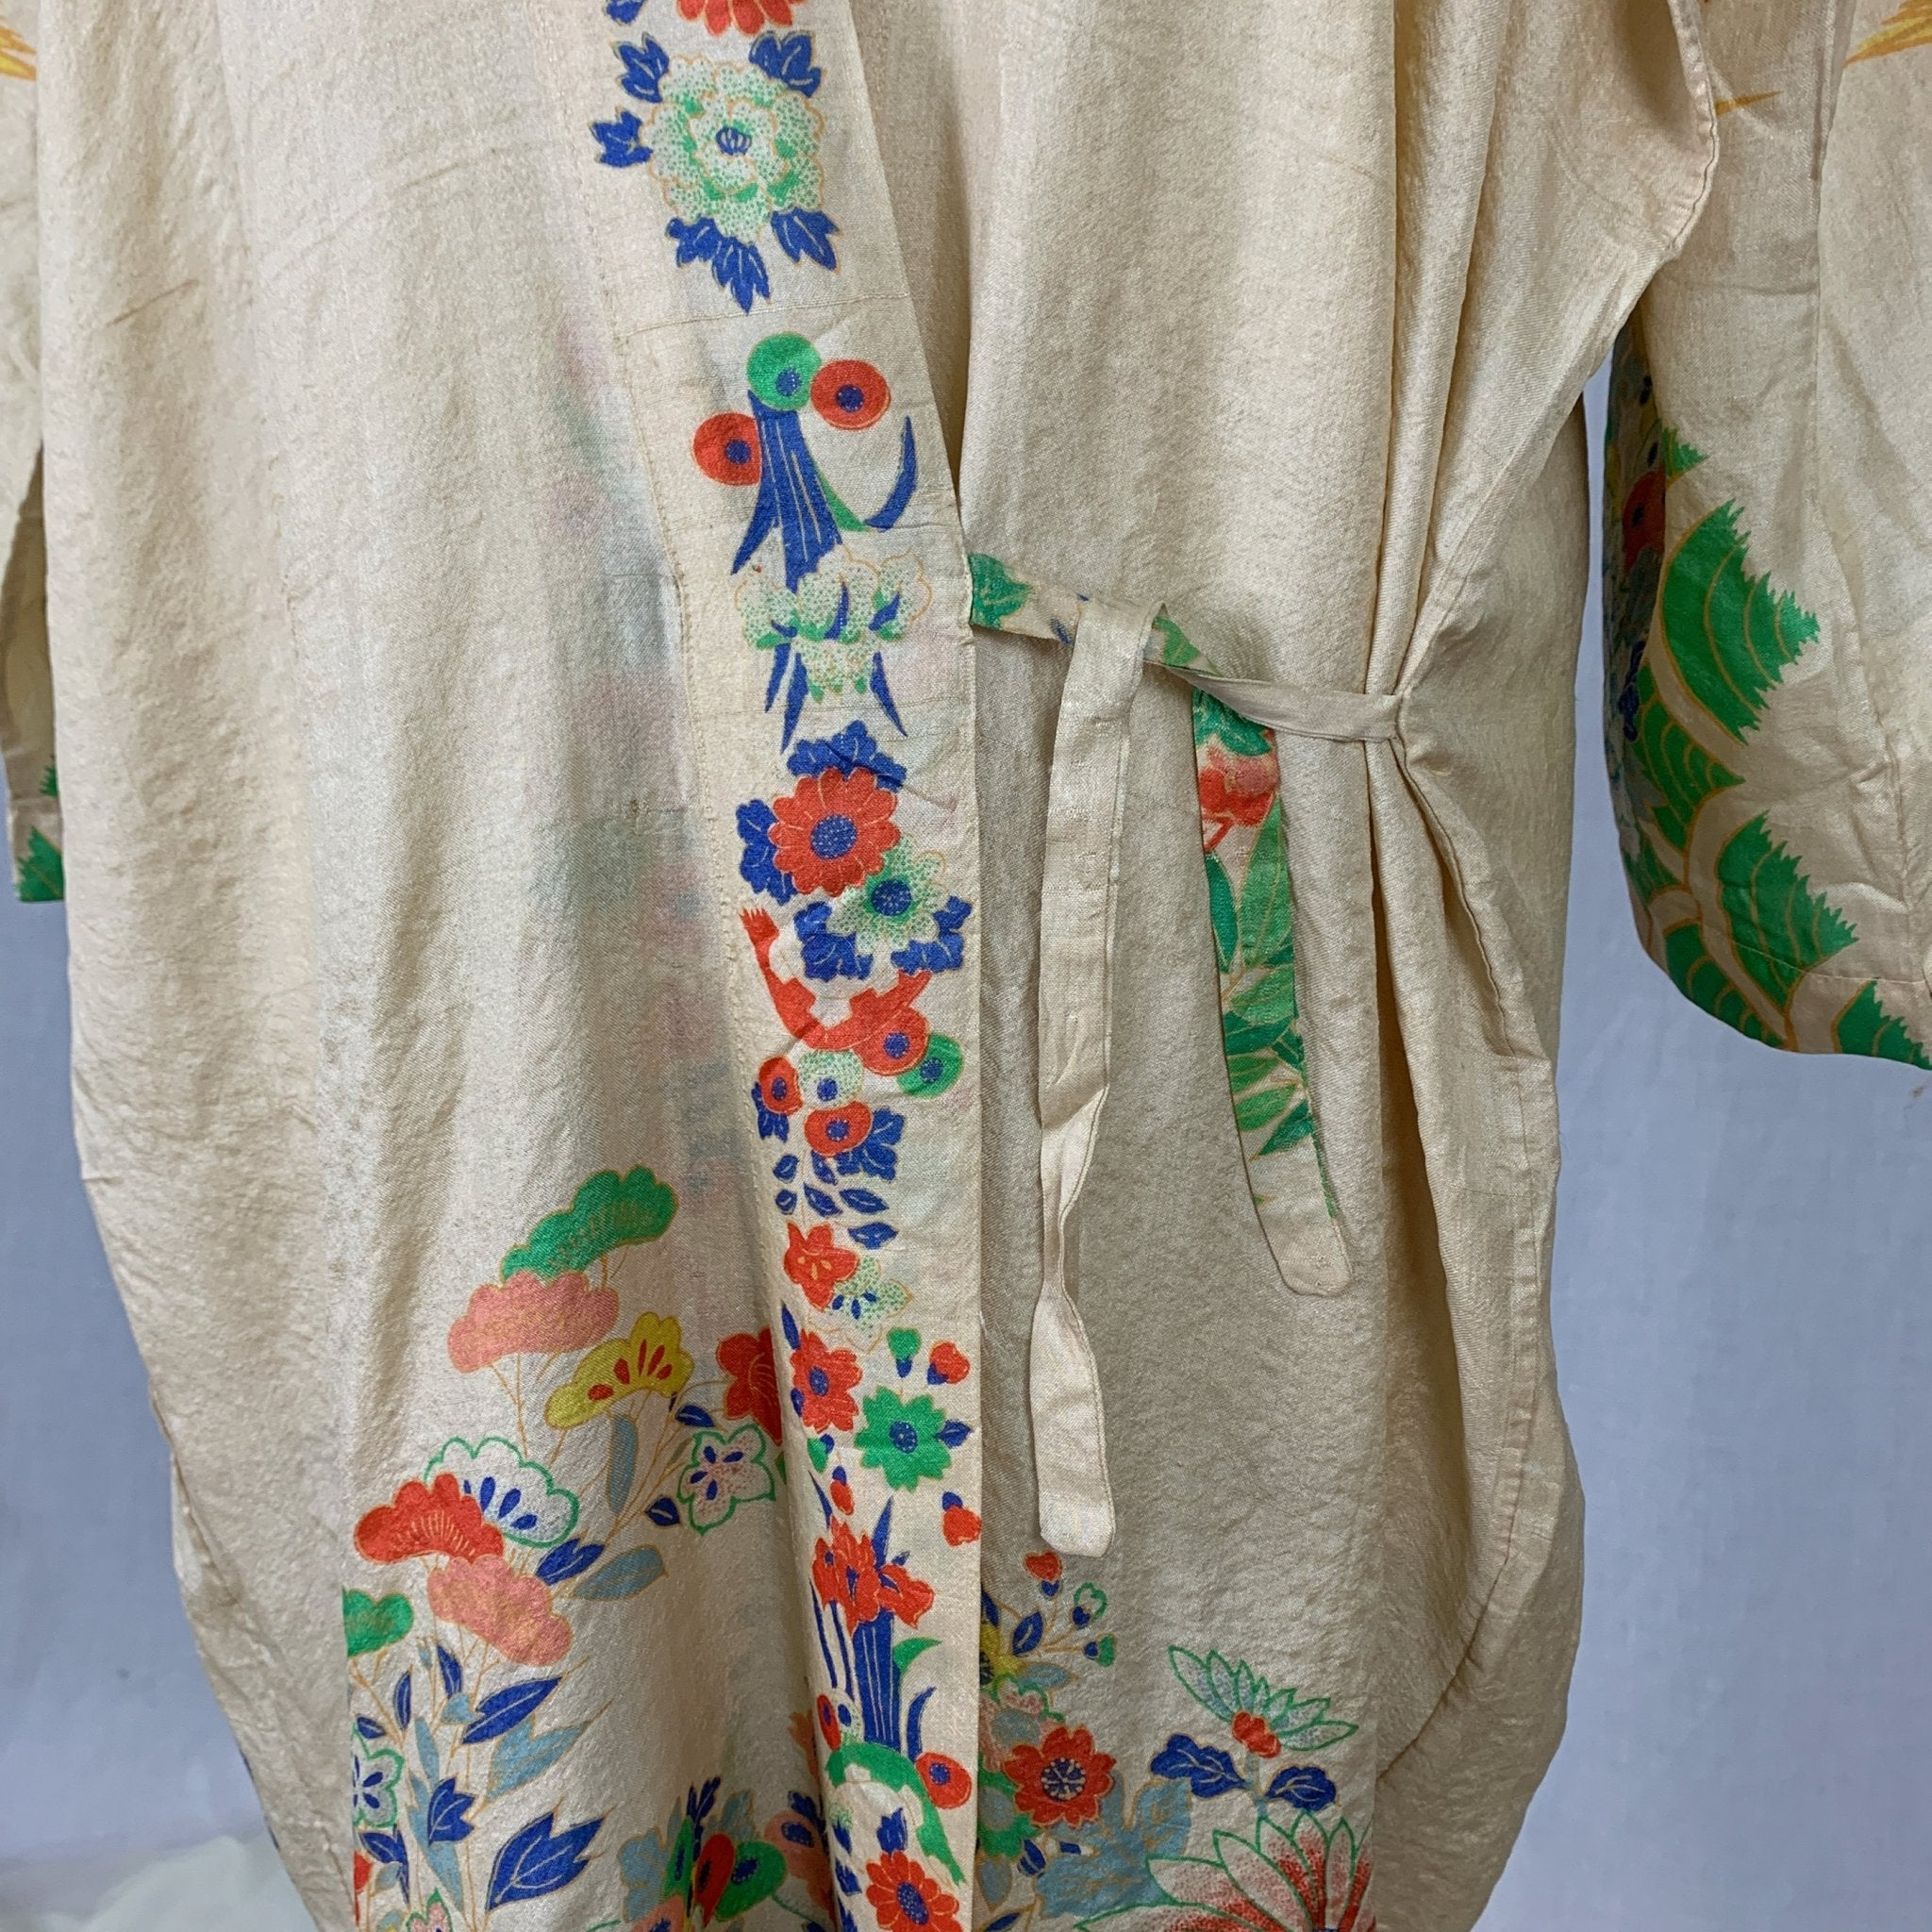 Antique 1920's Japanese Kimono Robe | Natural Pongee Raw Silk with Elaborate Floral Print | Size Free - Daggers & Dames